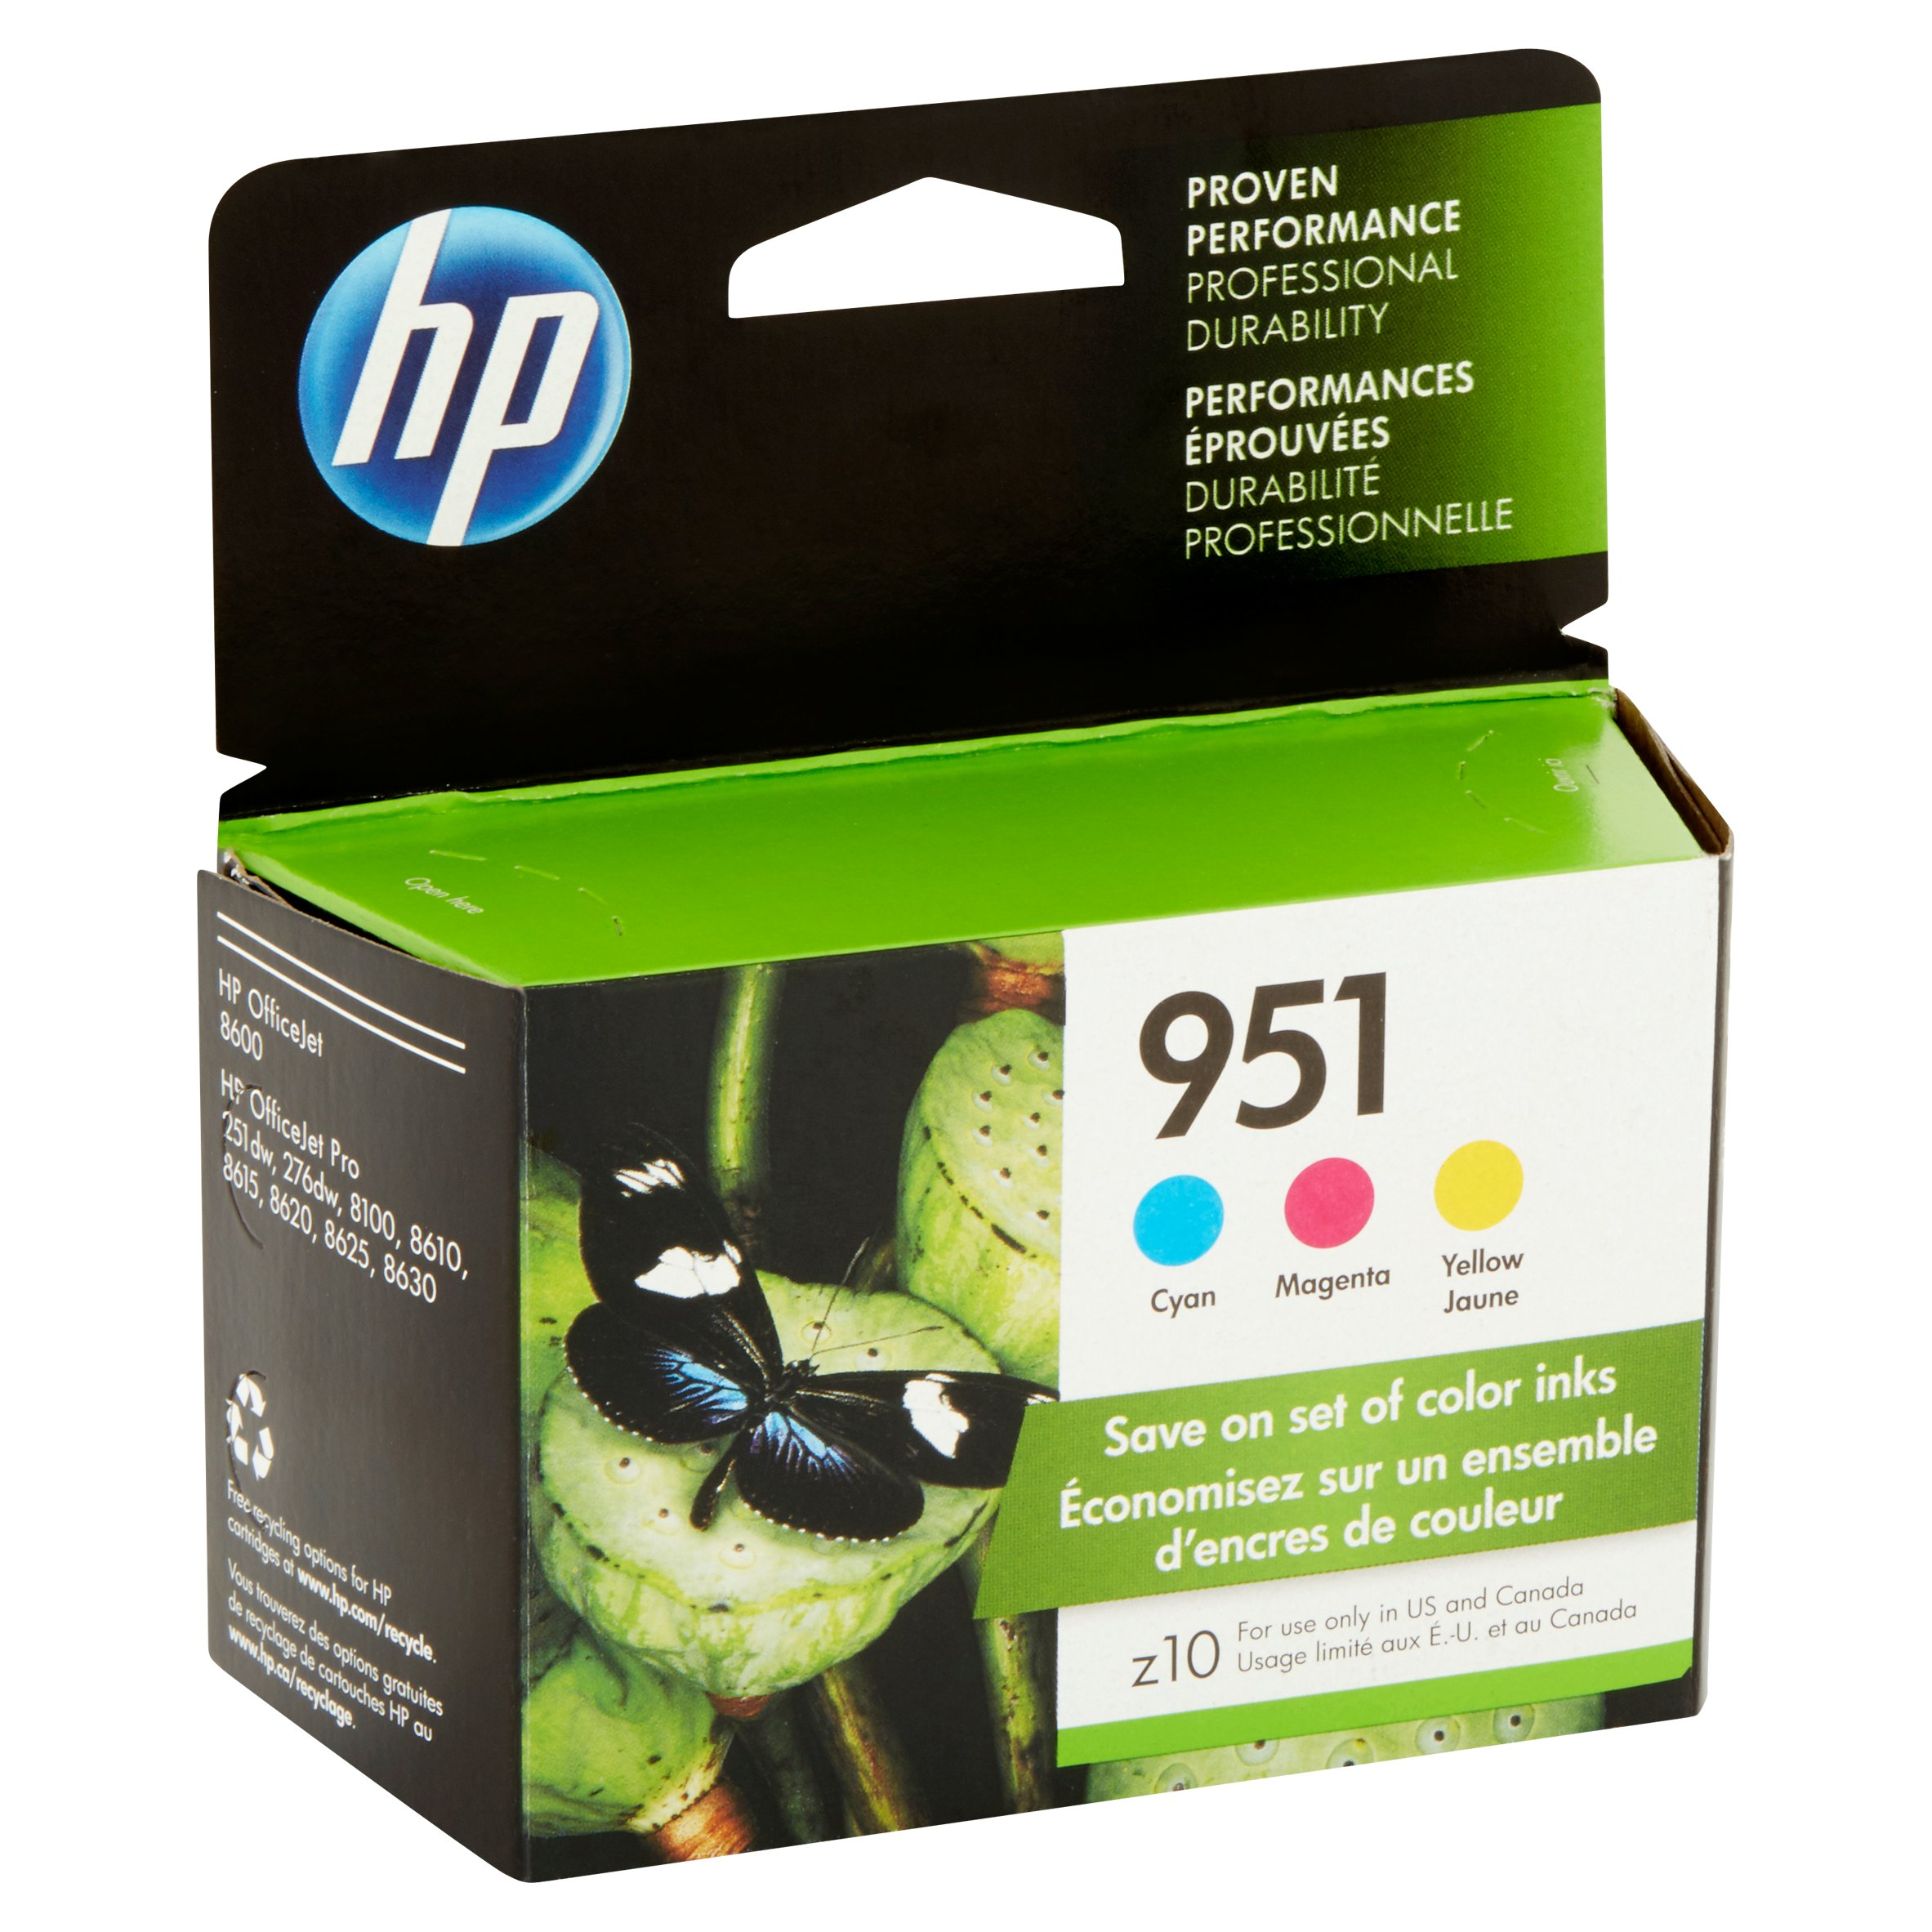 HP 951 Cyan, Magenta & Yellow ink cartridges, 3-pack (CR314FN)